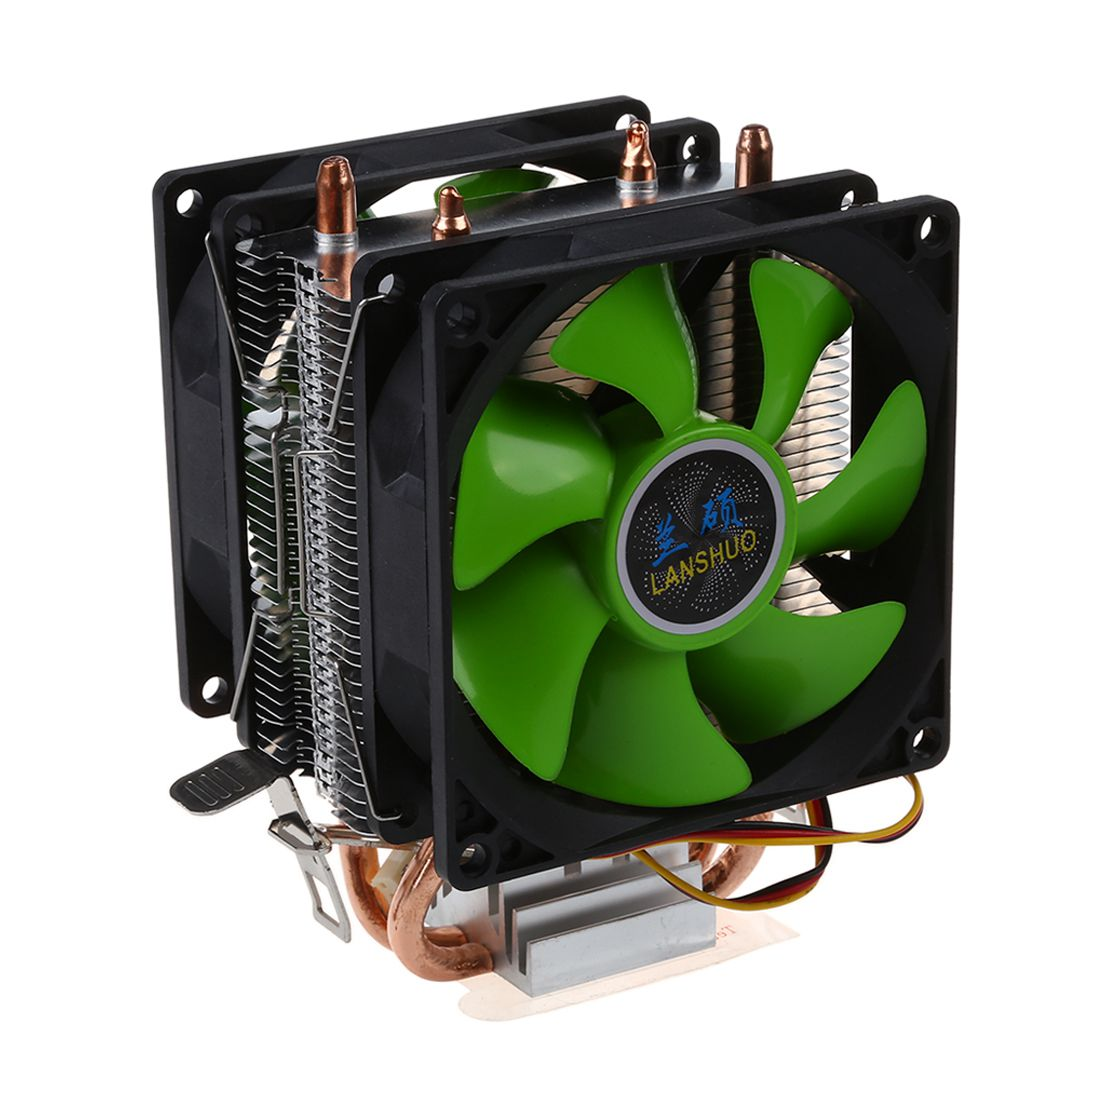 CPU cooler Silent Fan For Intel LGA775 / 1156/1155 AMD AM2 / AM2 + / AM3 2200rpm cpu silent fan cooler cooling heatsink for intel lga775 1155 amd am2 3 new drop shipping pc friend